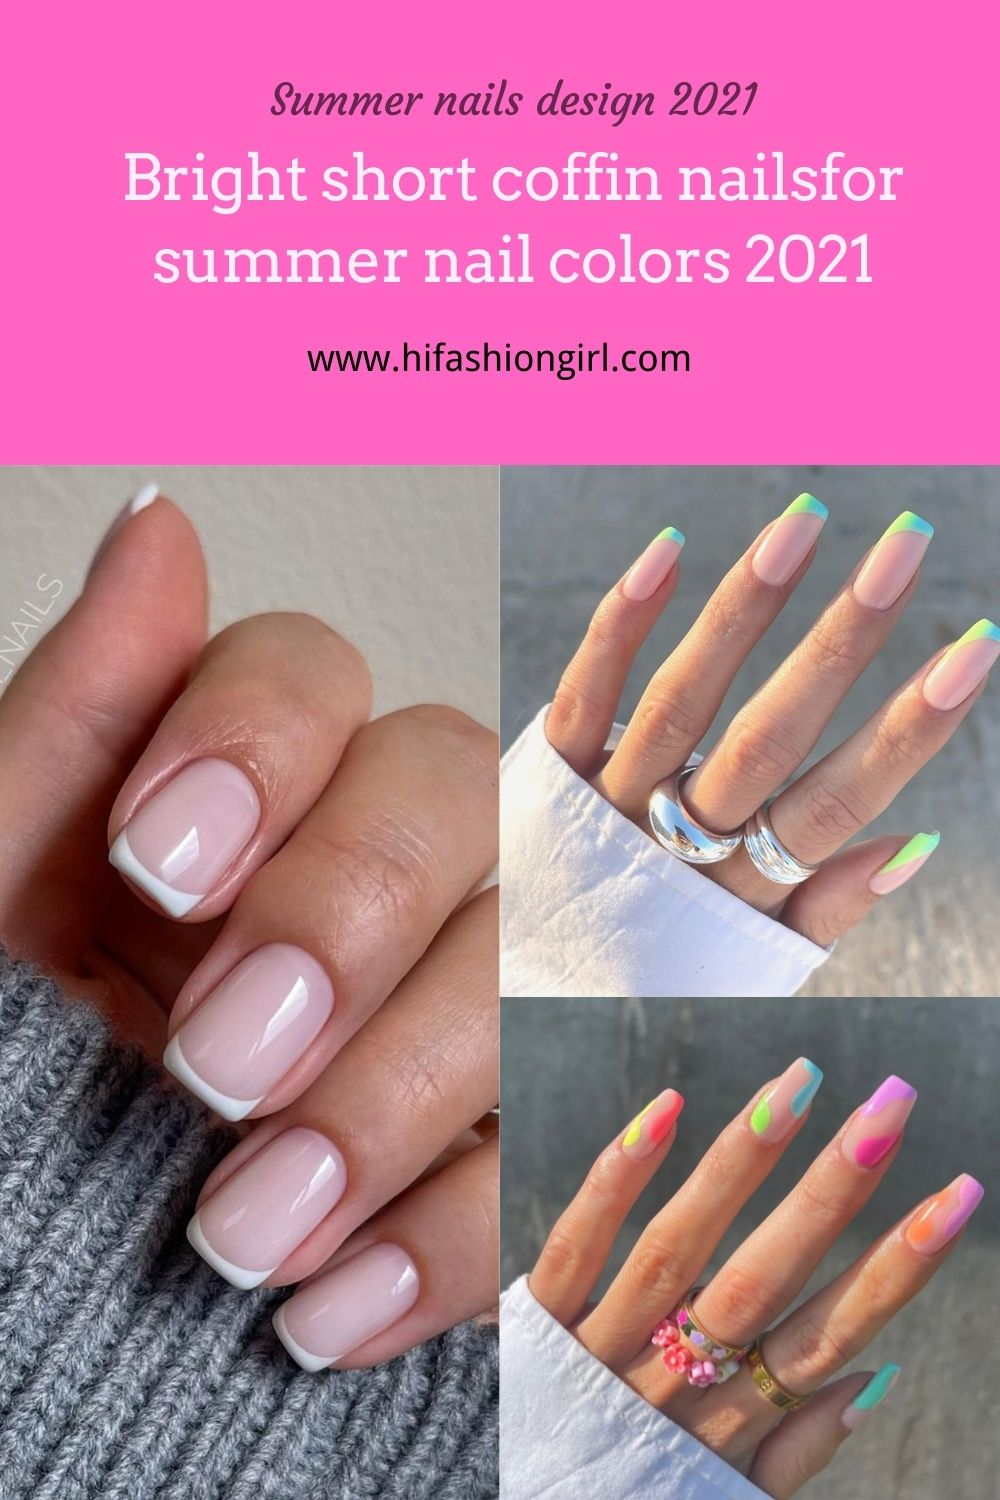 Bright short coffin nails design for summer nail colors 2021